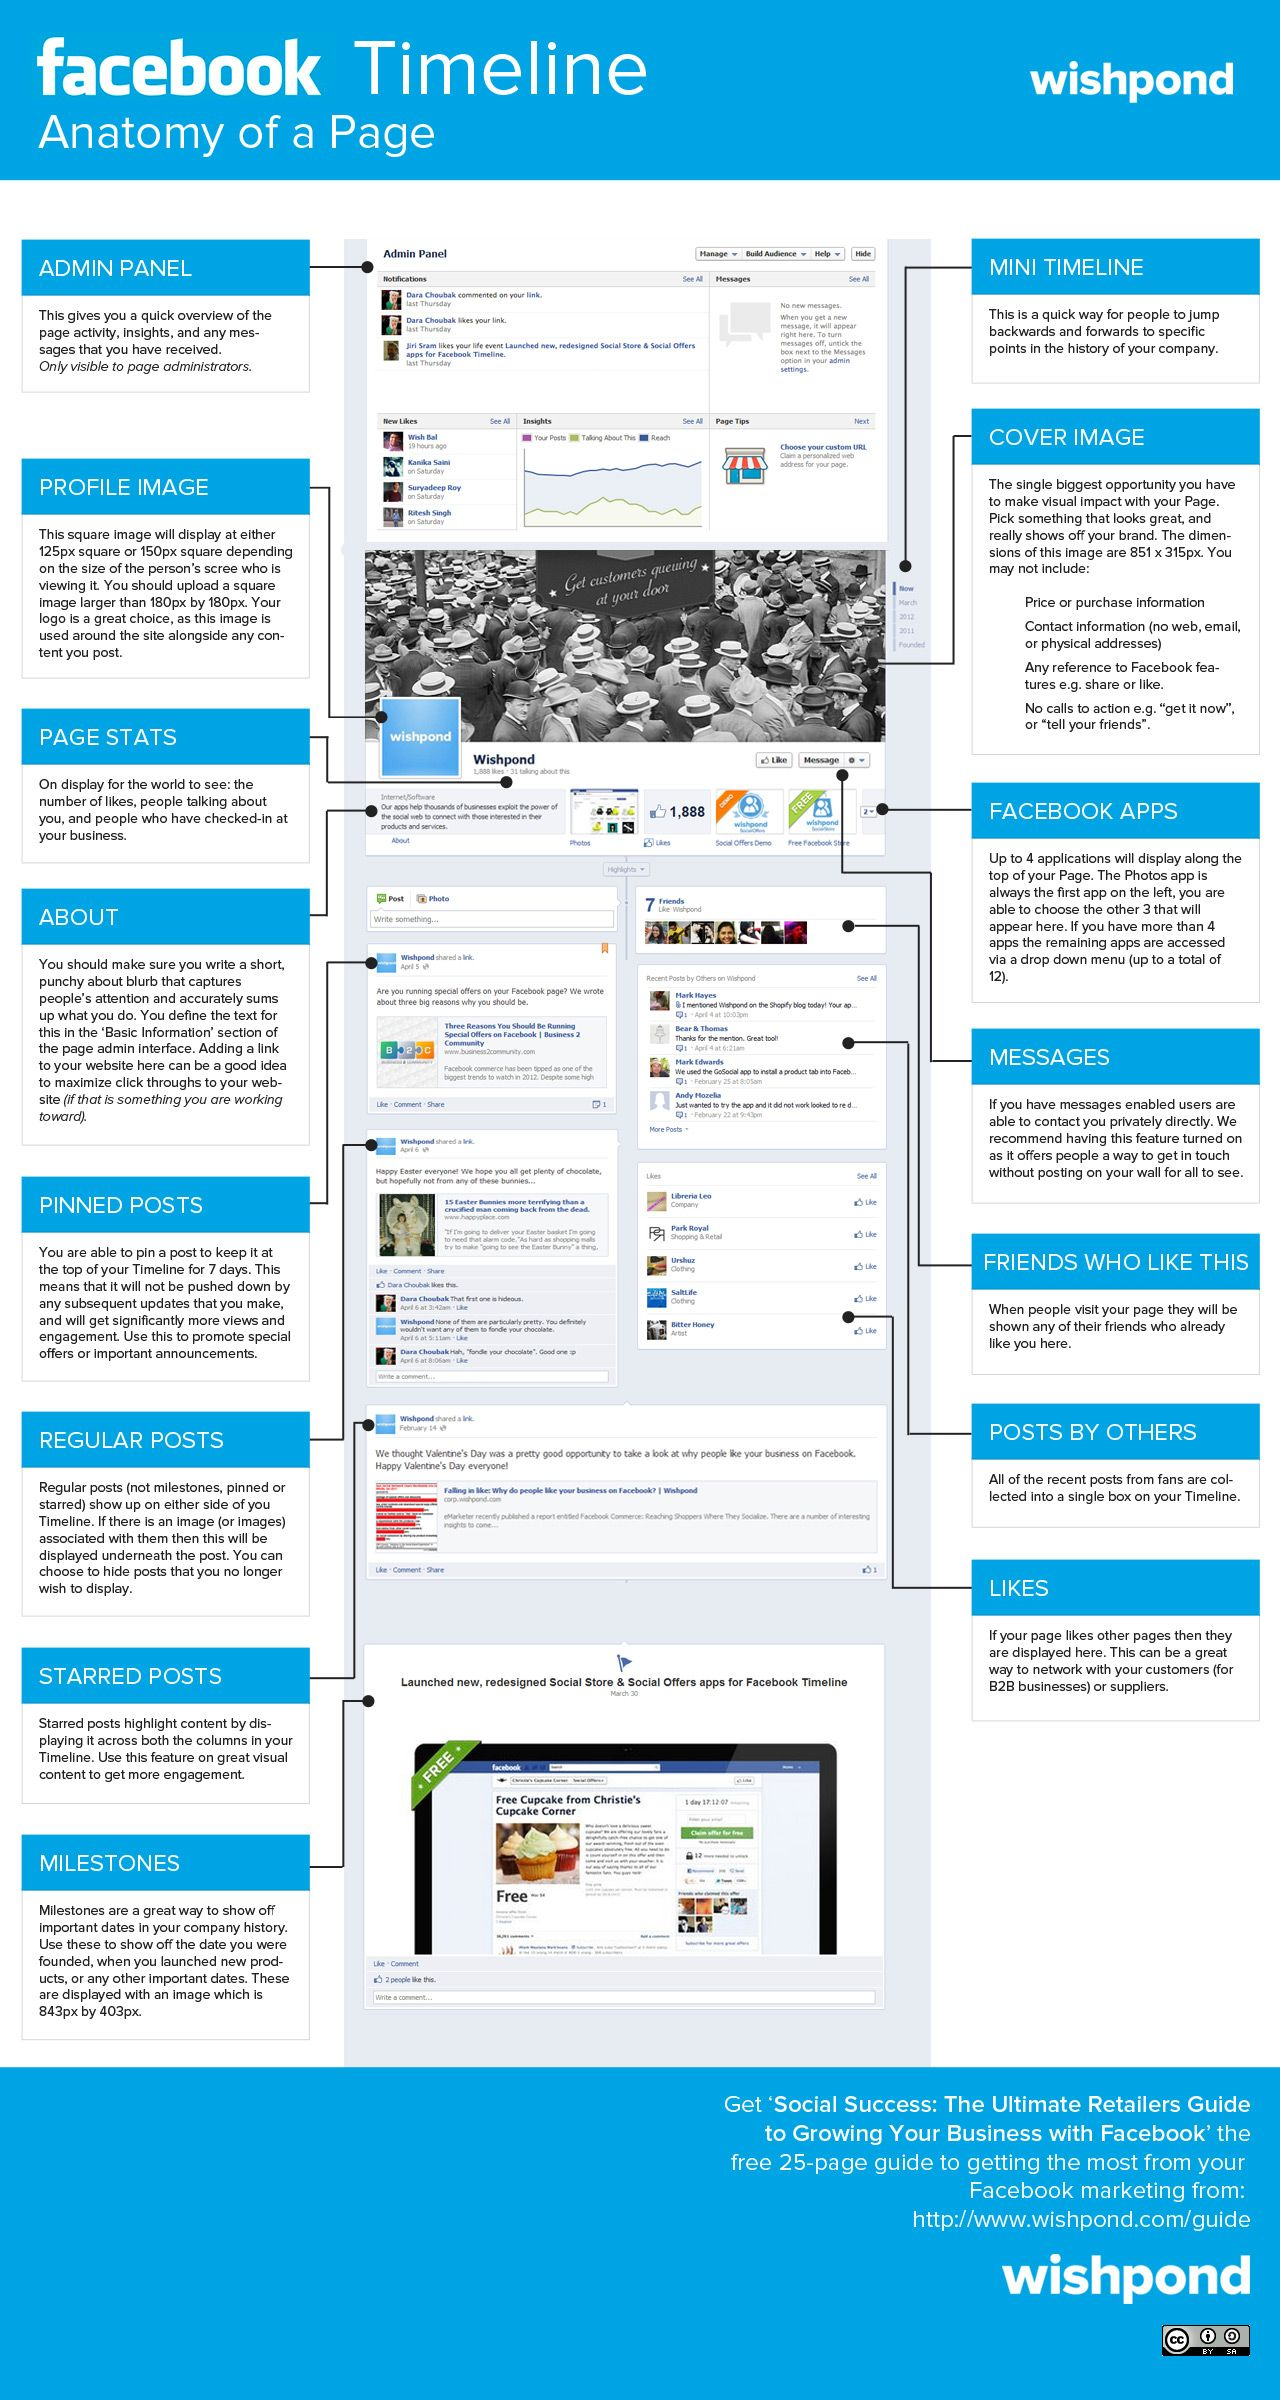 The Anatomy of a Facebook Timeline